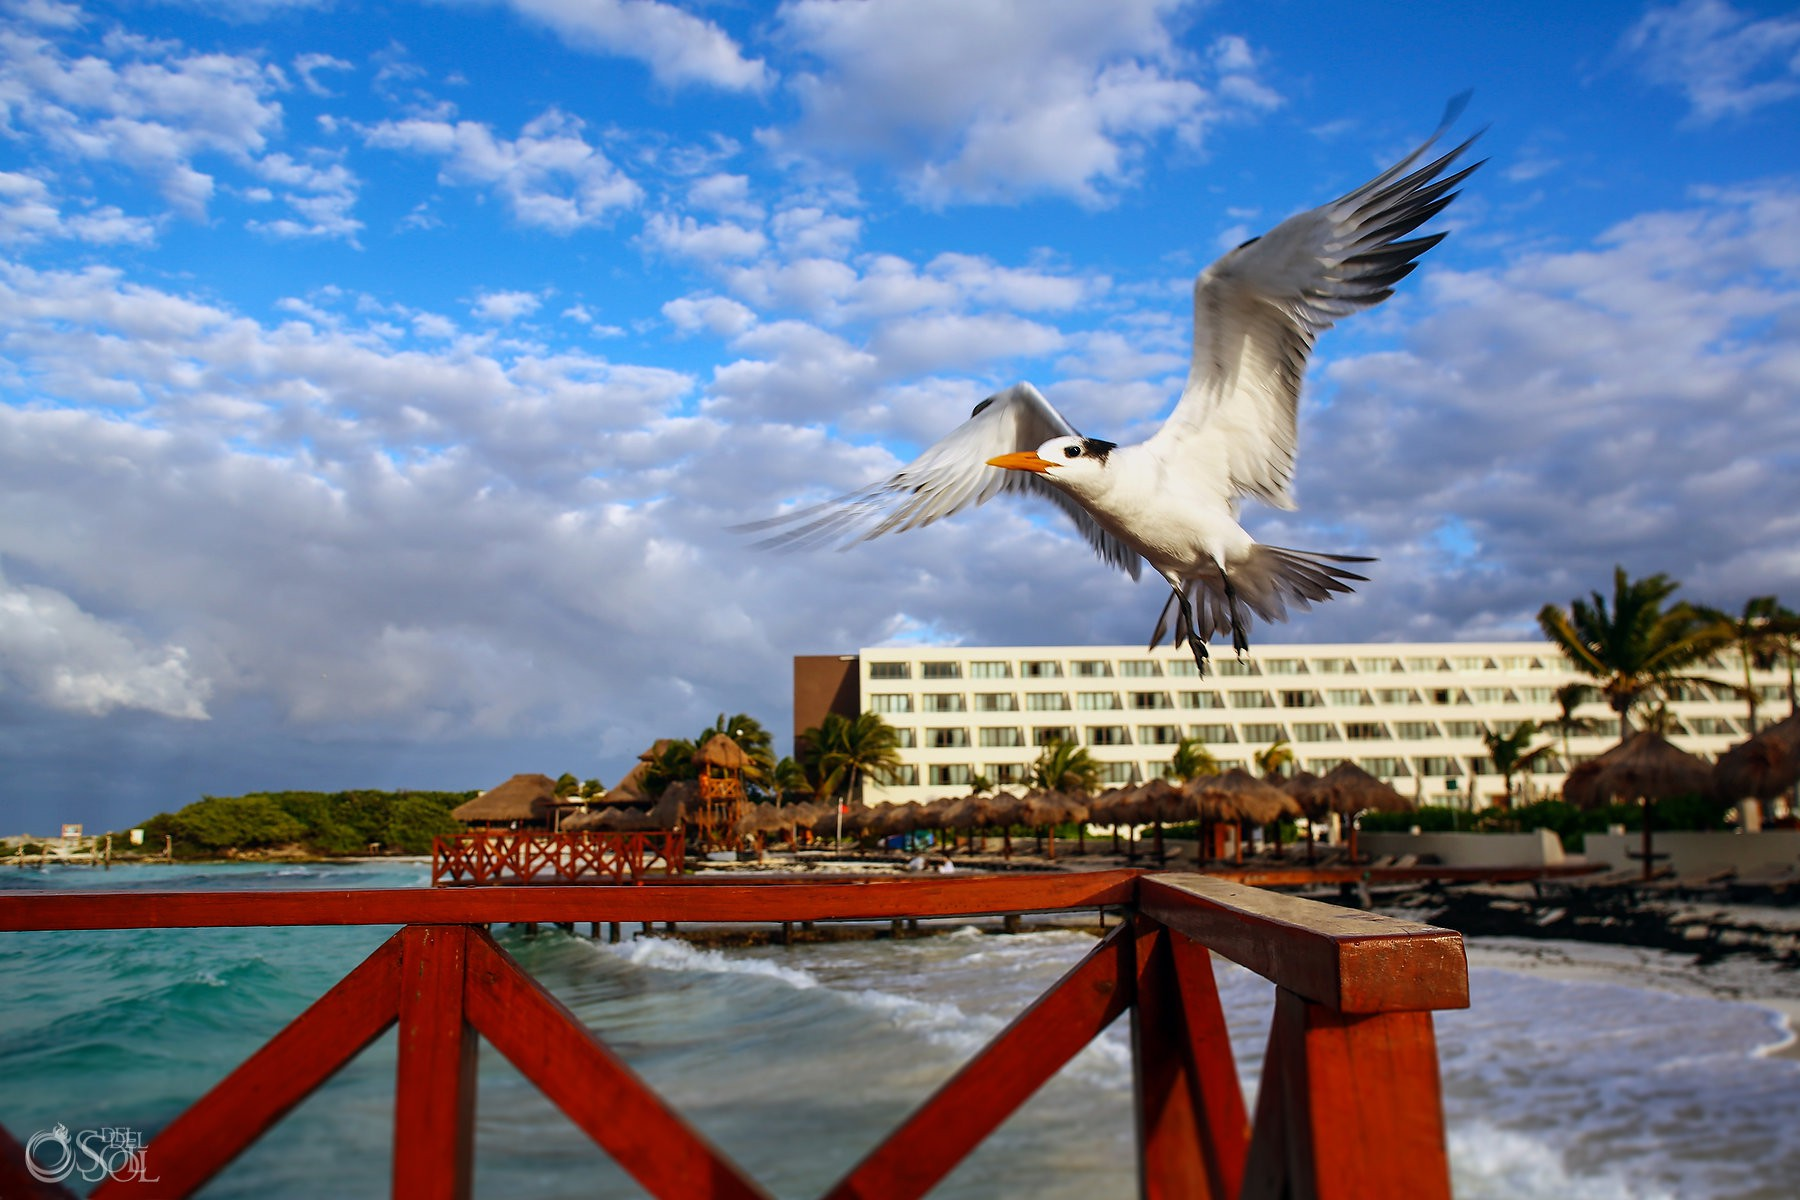 seagull flying at Hyatt Ziva Cancun, Mexico del sol photography